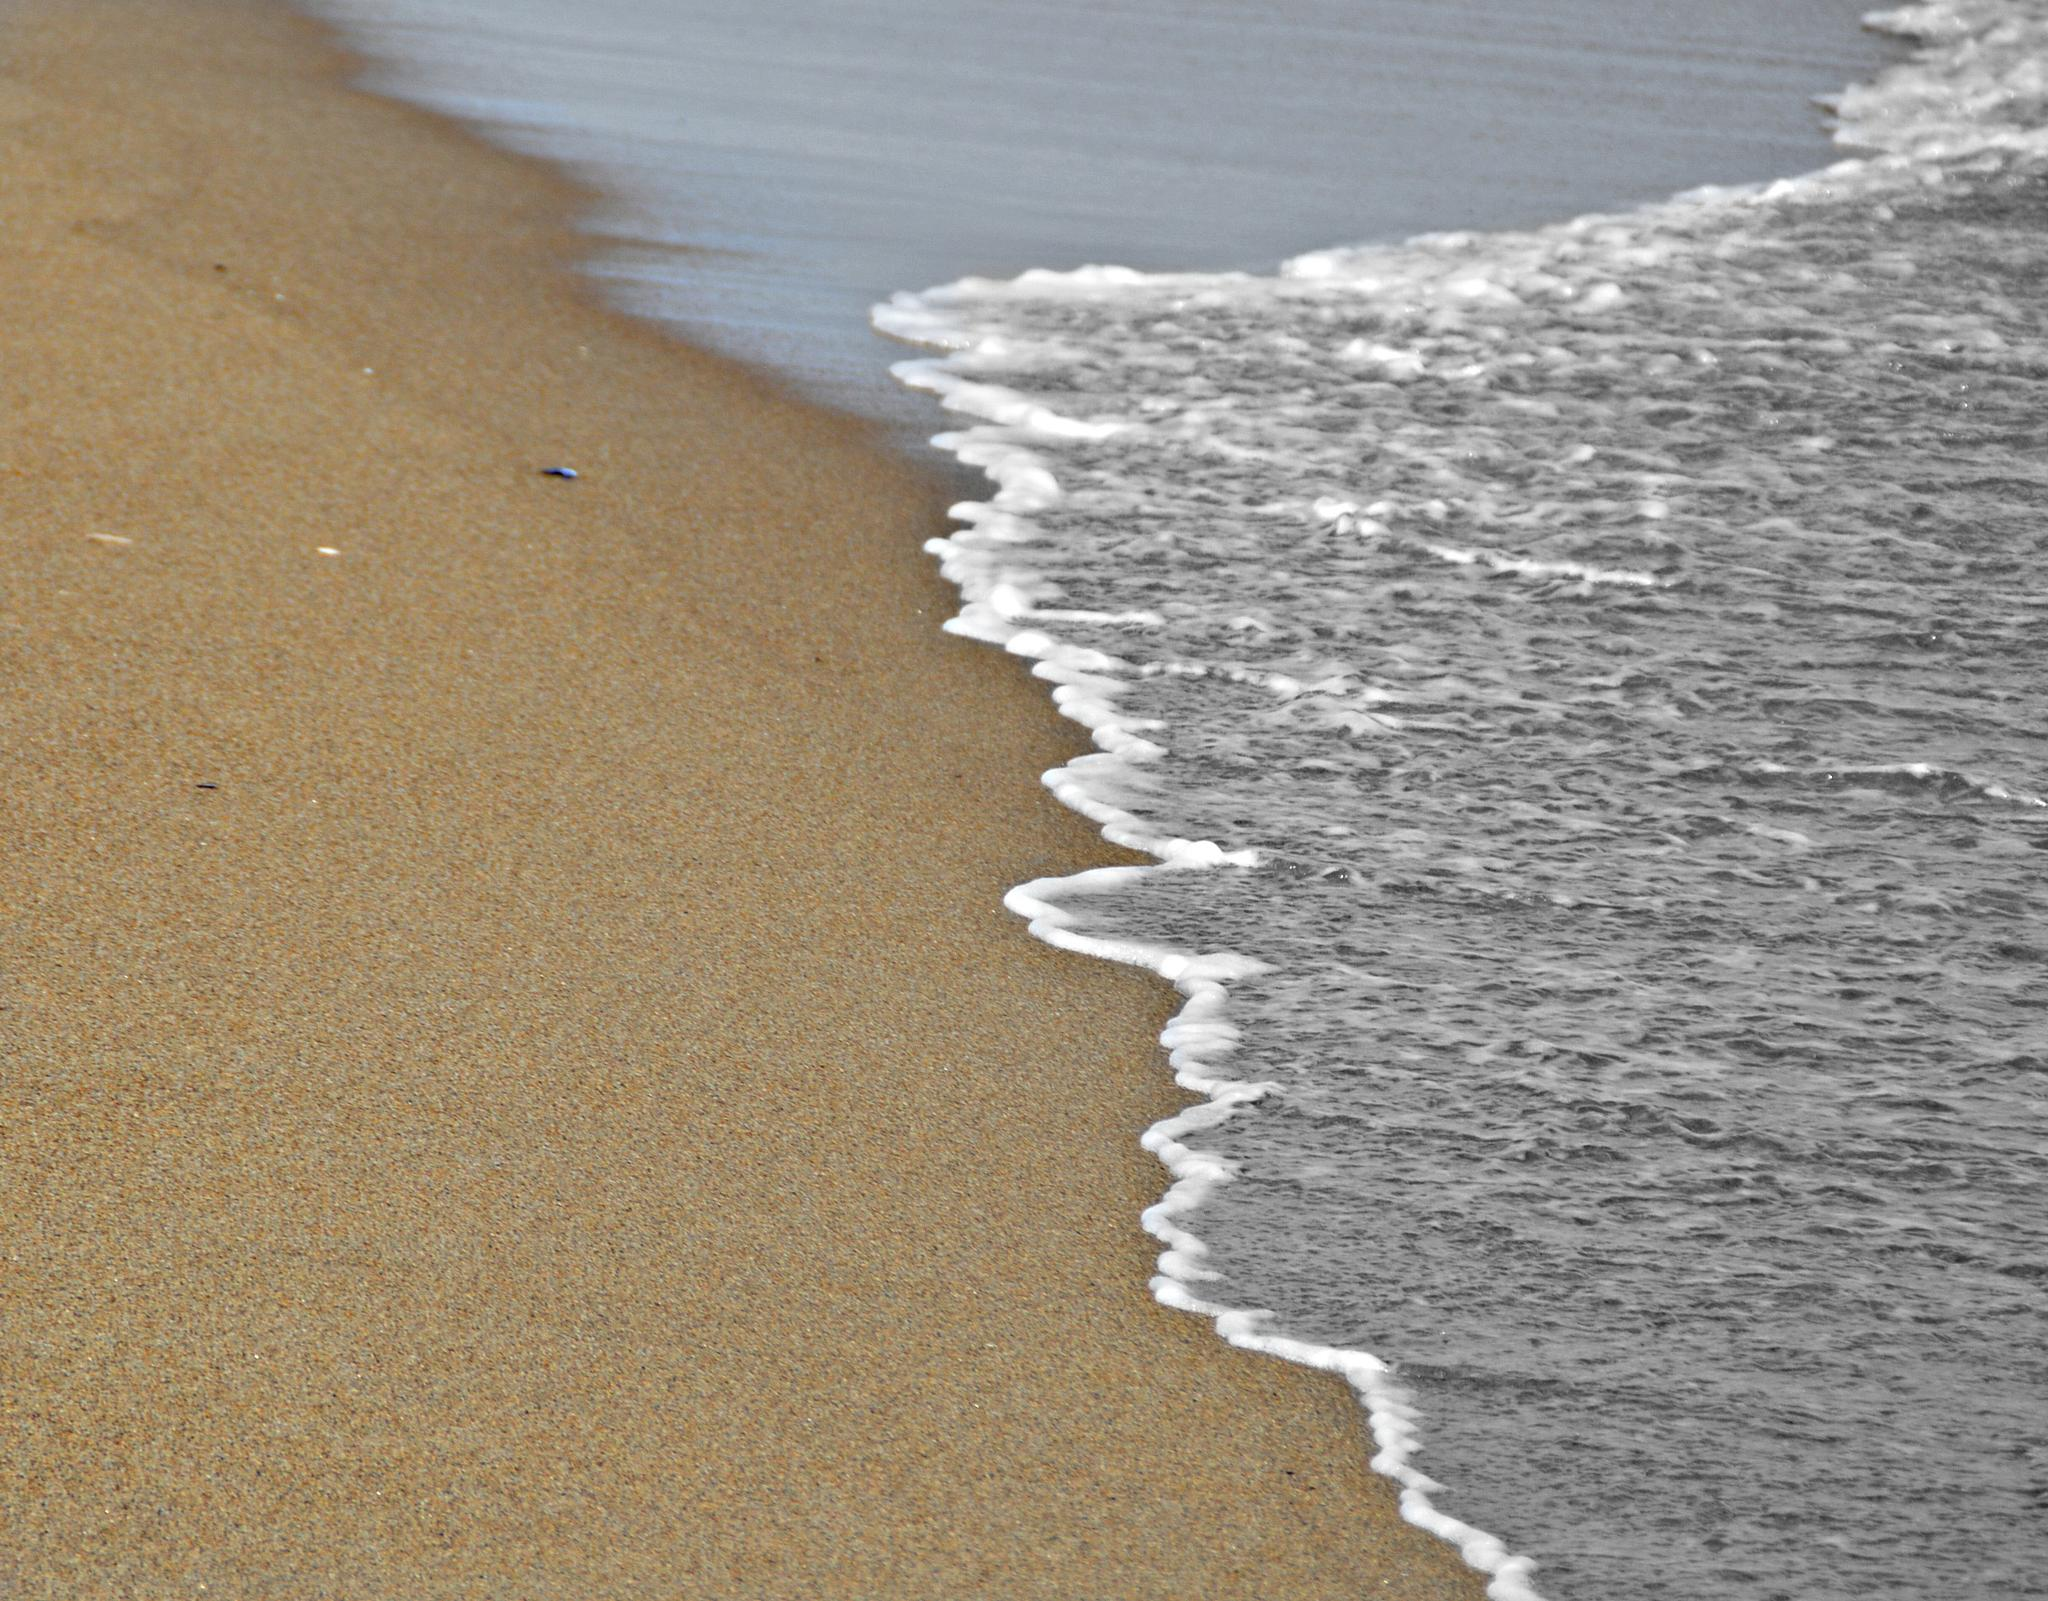 The calm at the beach by lisalovespictures